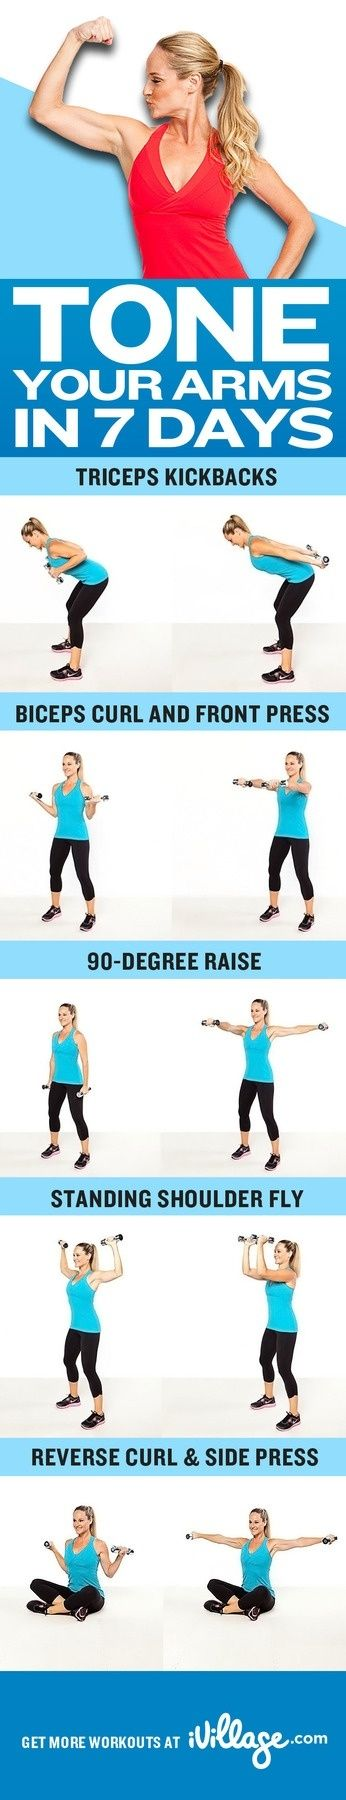 Tone your arms (or start to tone your arms)  in 7 days with these easy workouts.♥✤